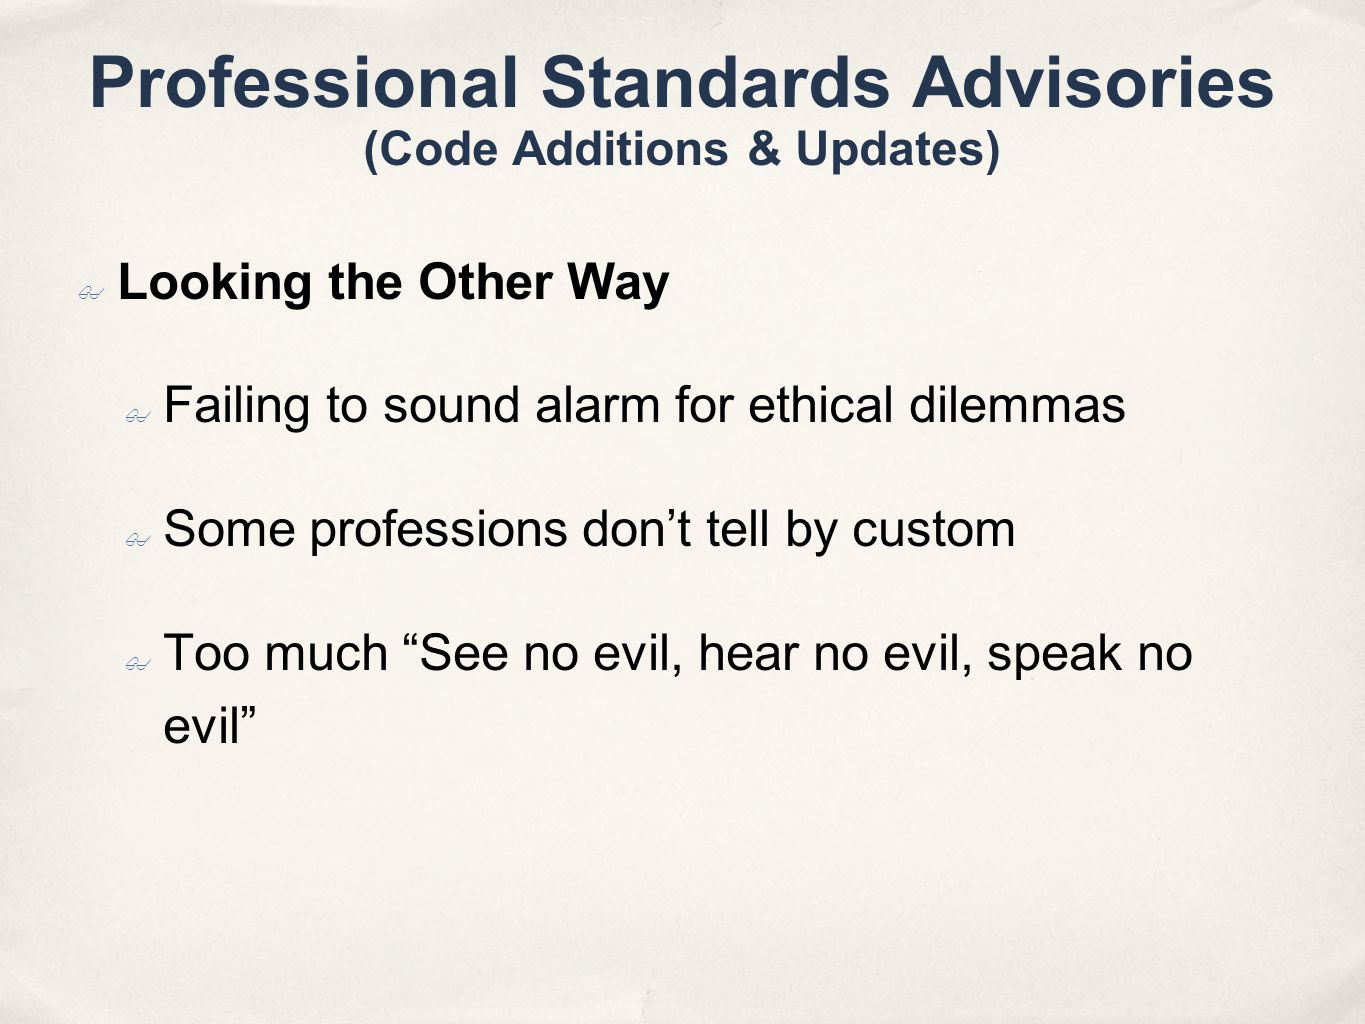 Professional Standards Advisories (Code Additions & Updates) Looking the Other Way Failing to sound alarm for ethical dilemmas Some professions dont tell by custom Too much See no evil, hear no evil, speak no evil